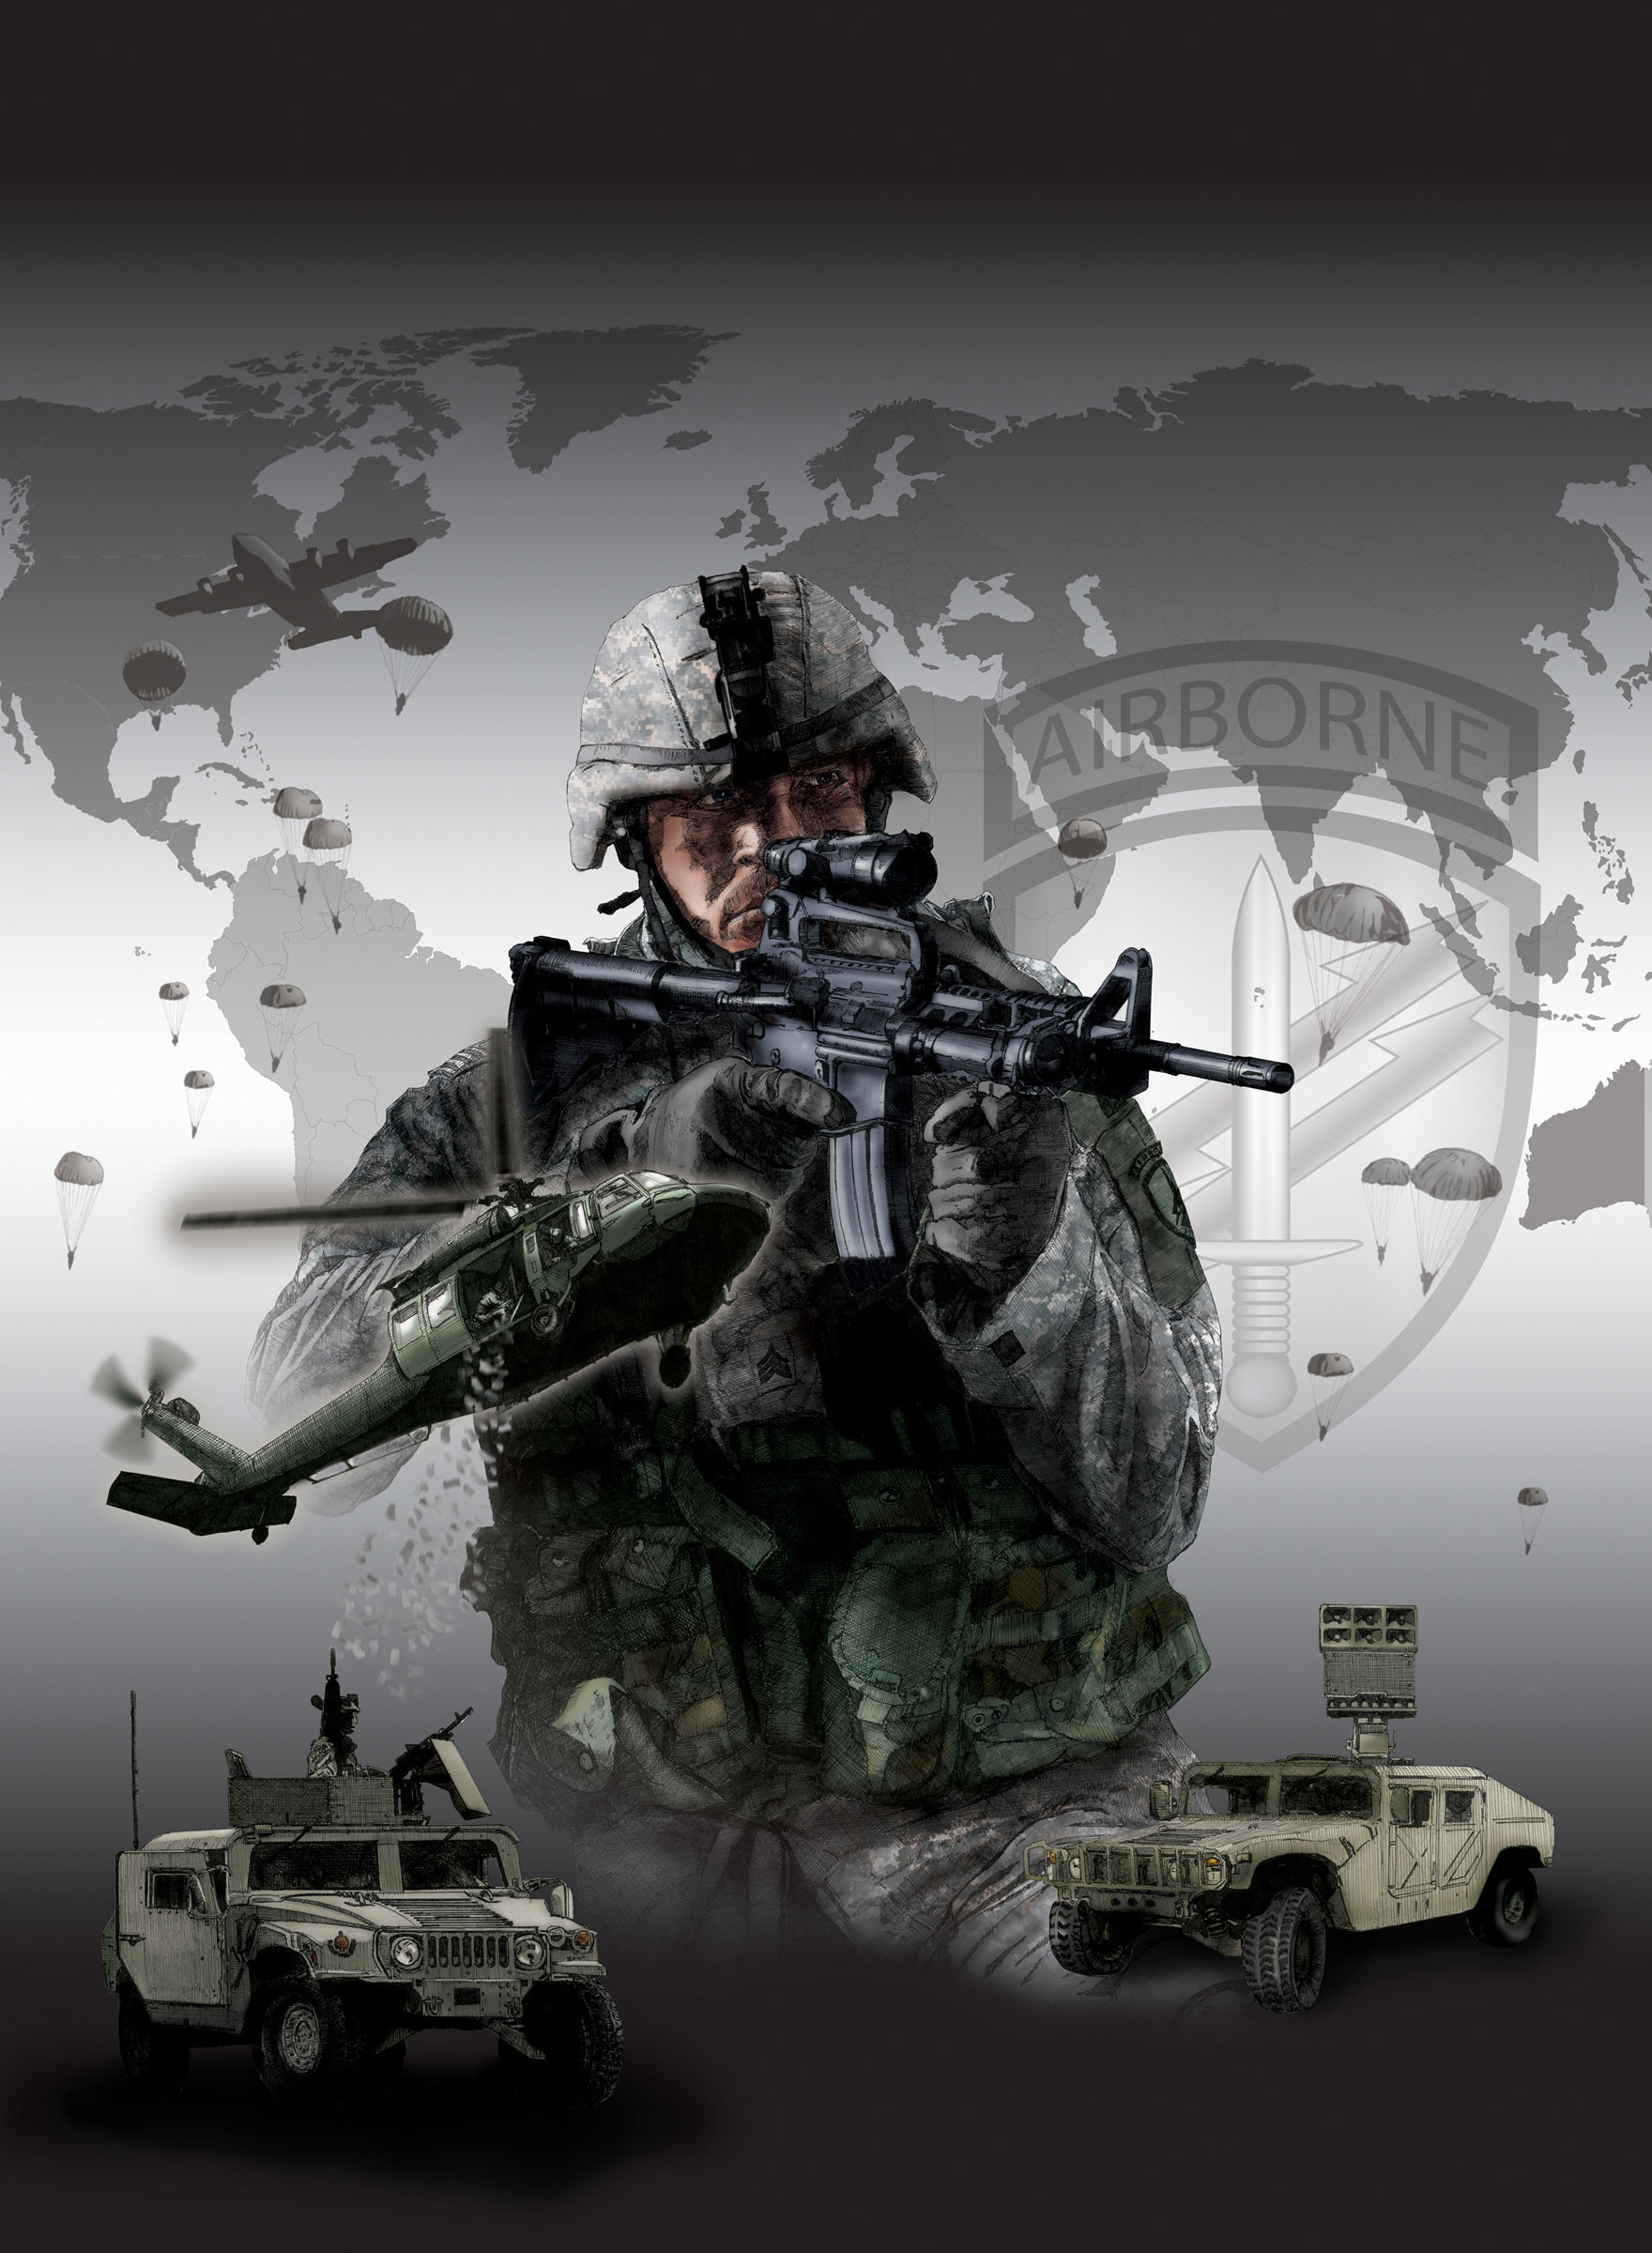 Coloring done in Photoshop and compositing with the background vector elements, such as the Civil Affairs/PSYOP (USACAPOC) patch and world continents were done in Illustrator by Douglas Weckesser.